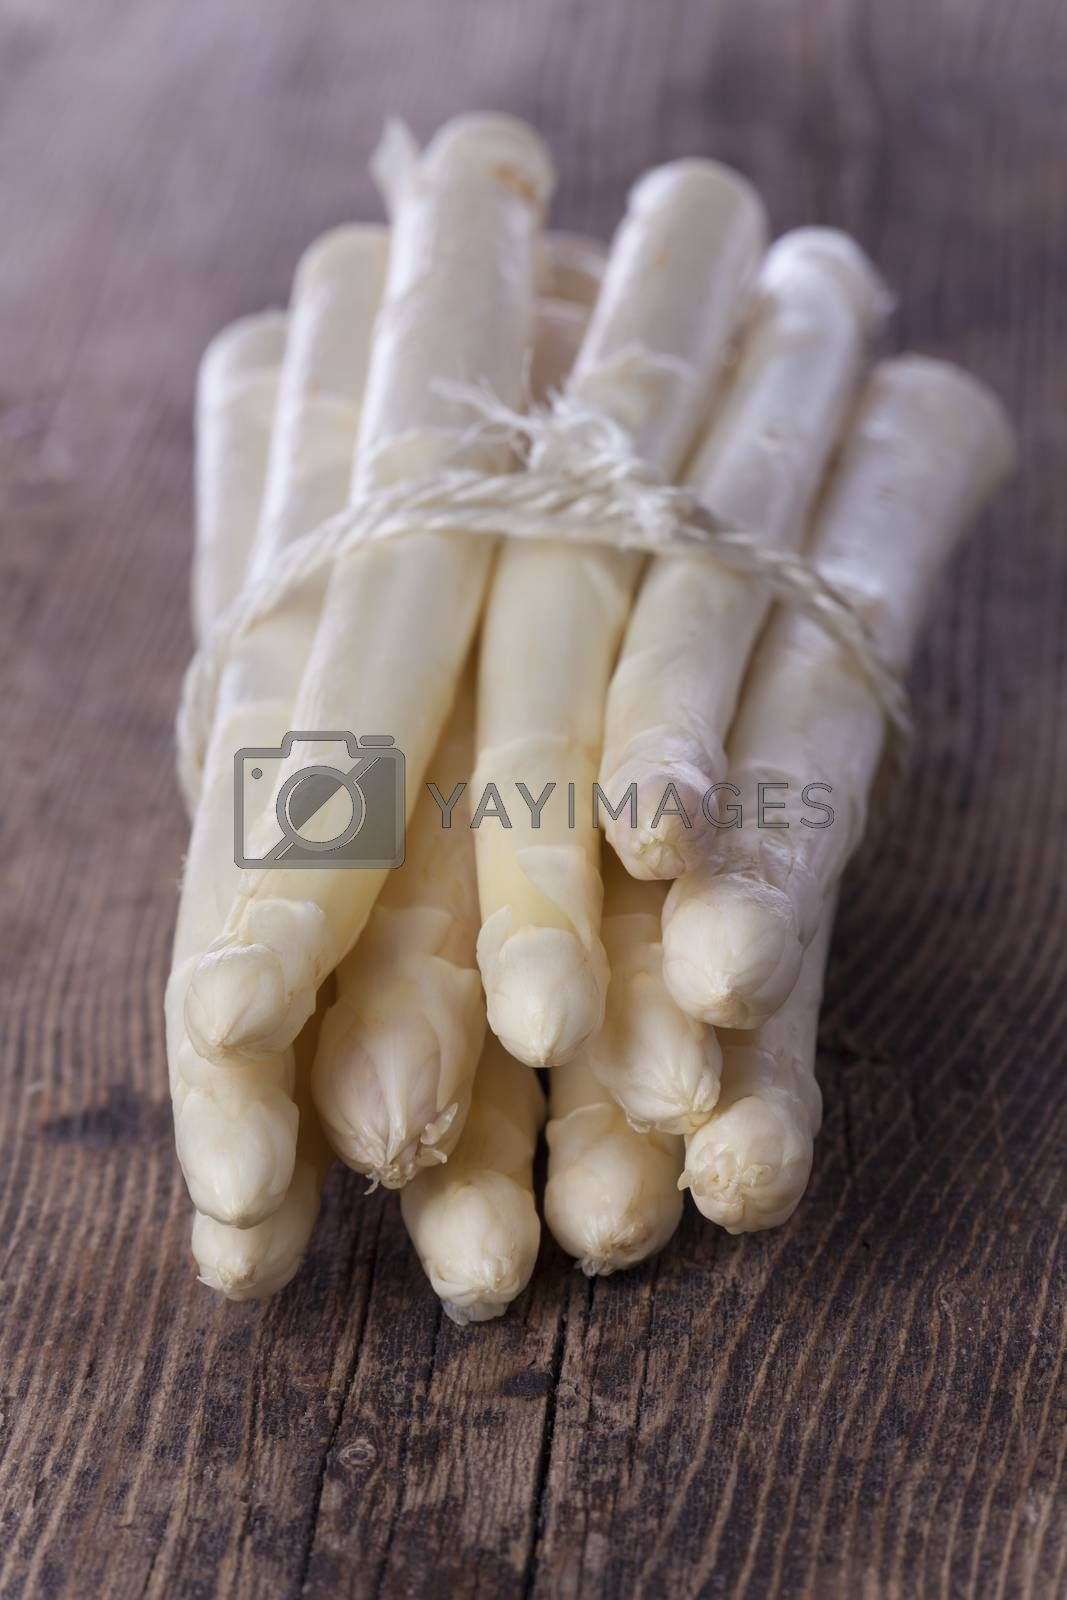 Royalty free image of raw white asparagus  by bernjuer